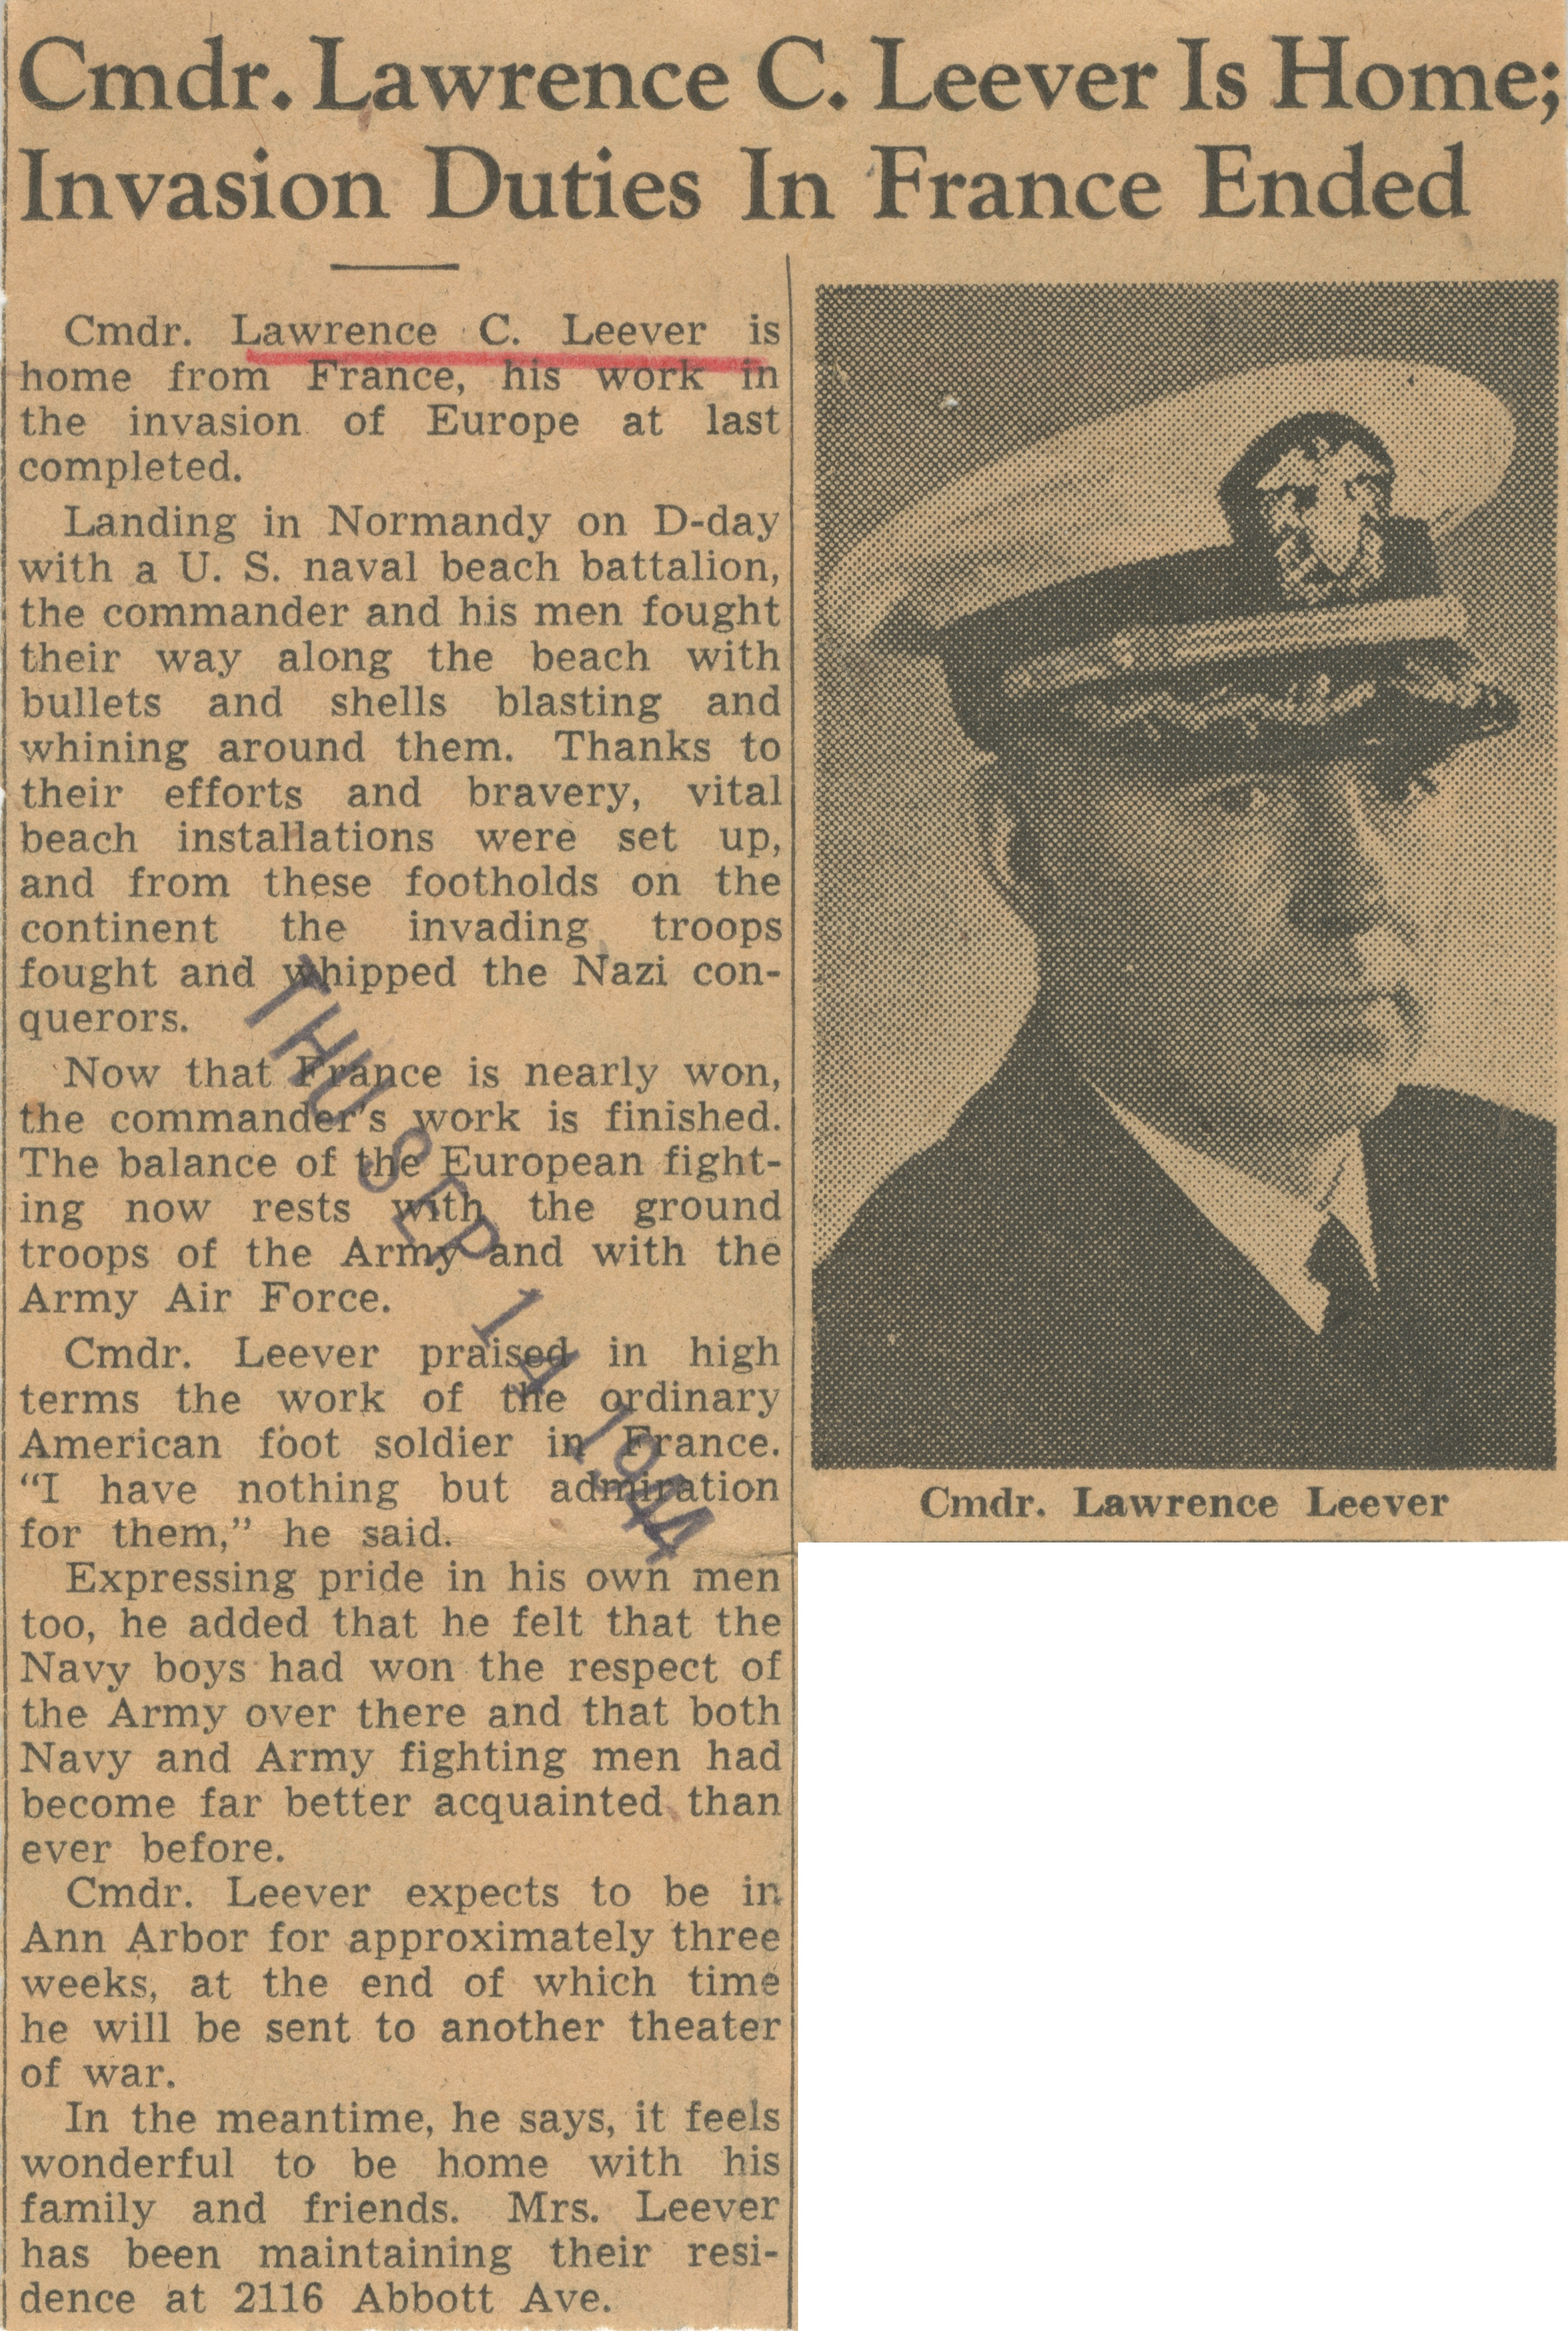 Cmdr. Lawrence C. Leever Is Home; Invasion Duties In France Ended image